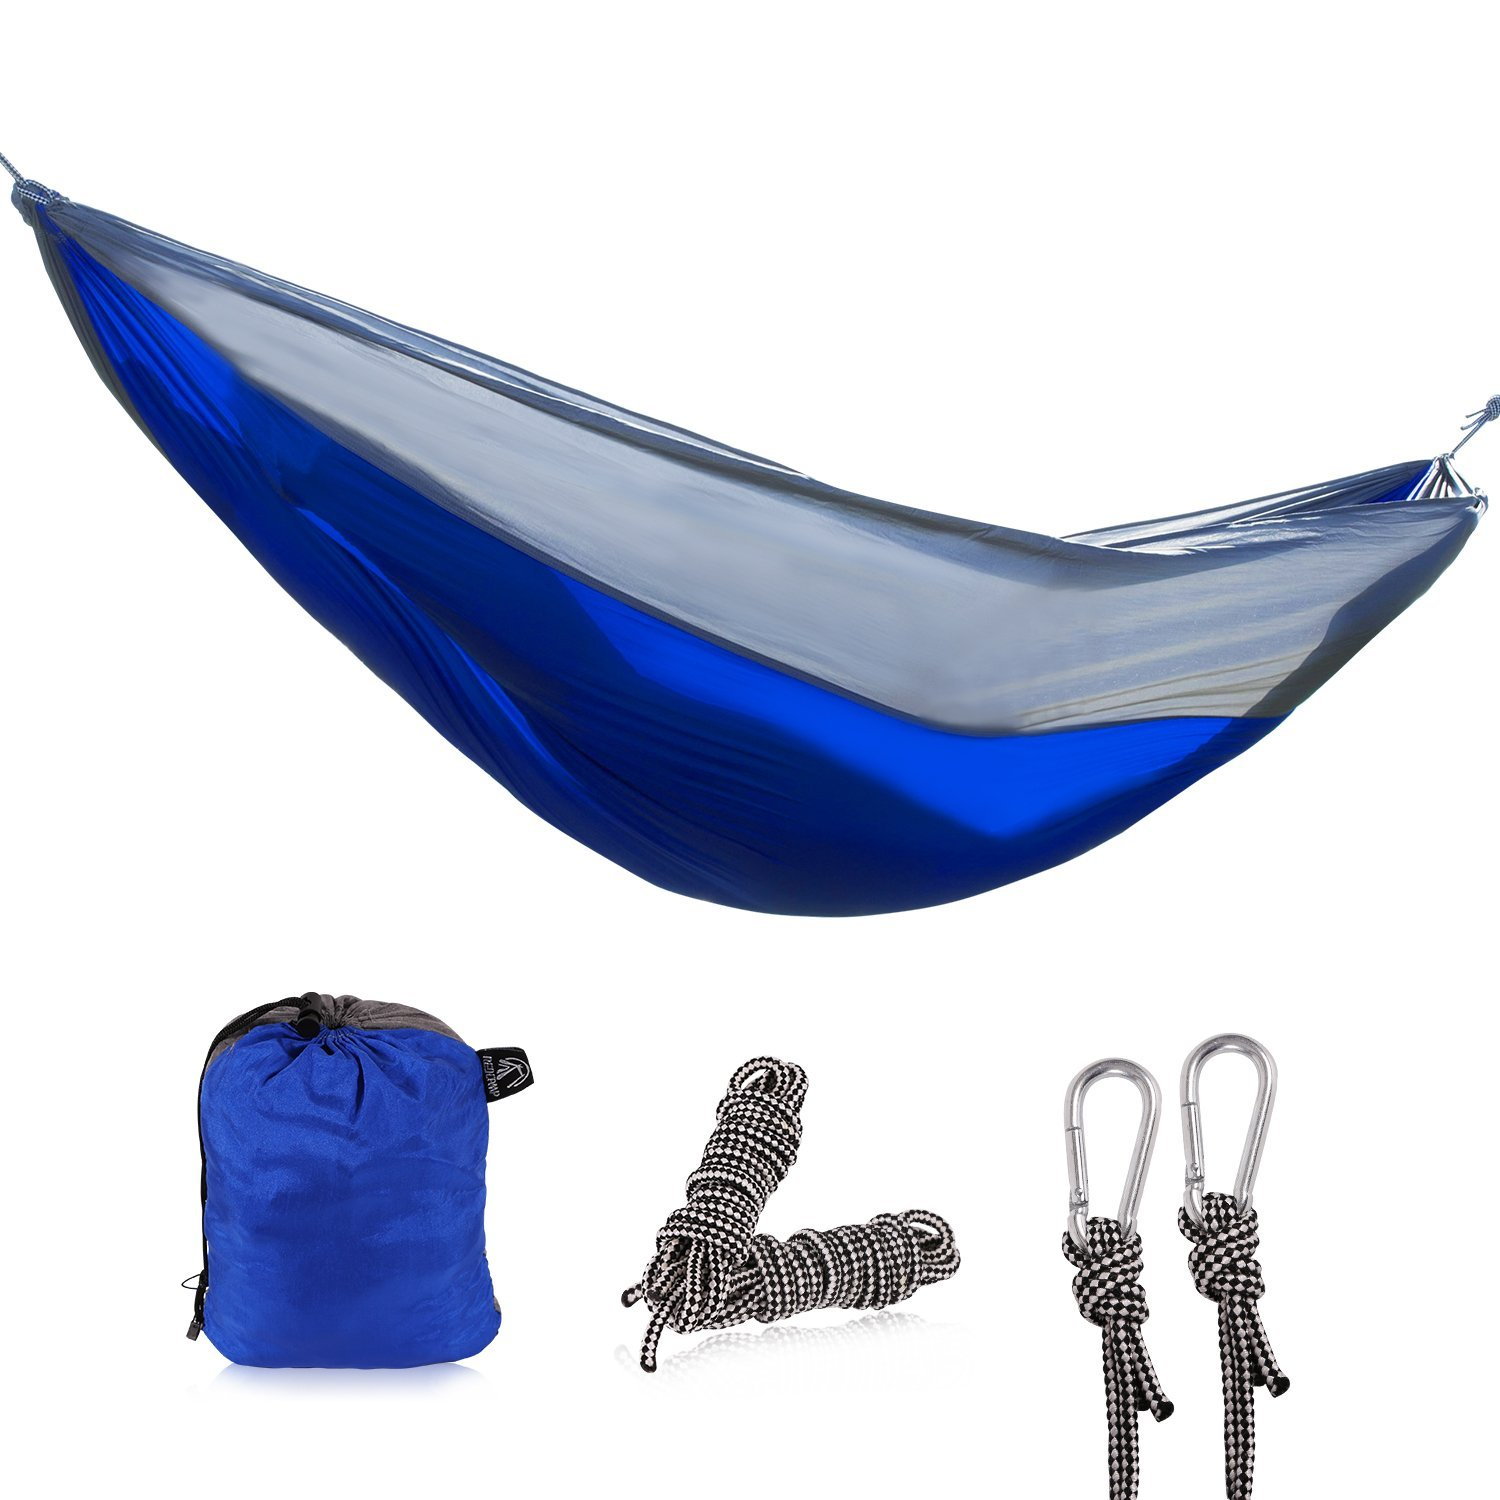 REDCAMP Camping Double Hammock, Portable Hammock with 2 Straps, Red Strpe